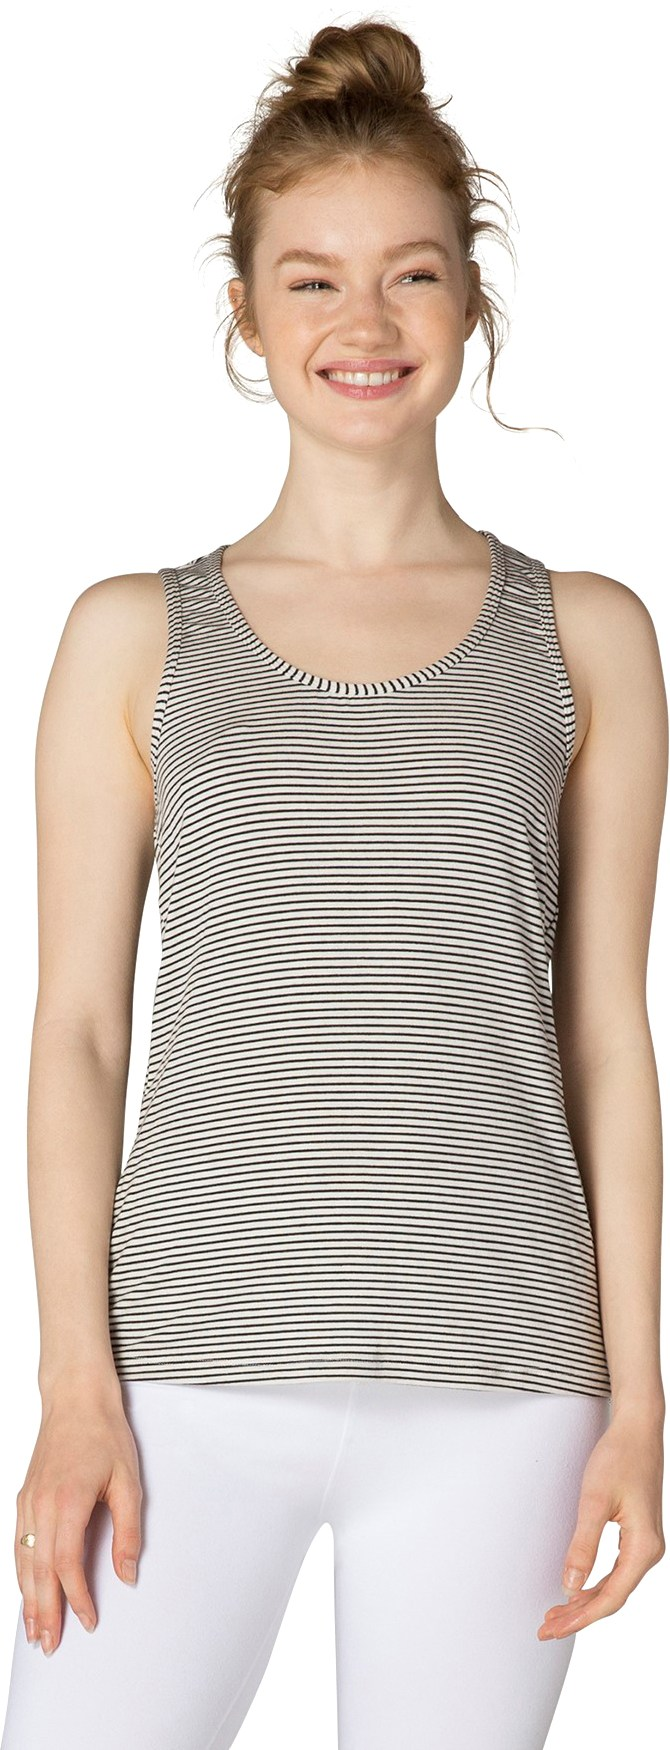 Beyond Yoga Easy Does It Tank Top - Women's